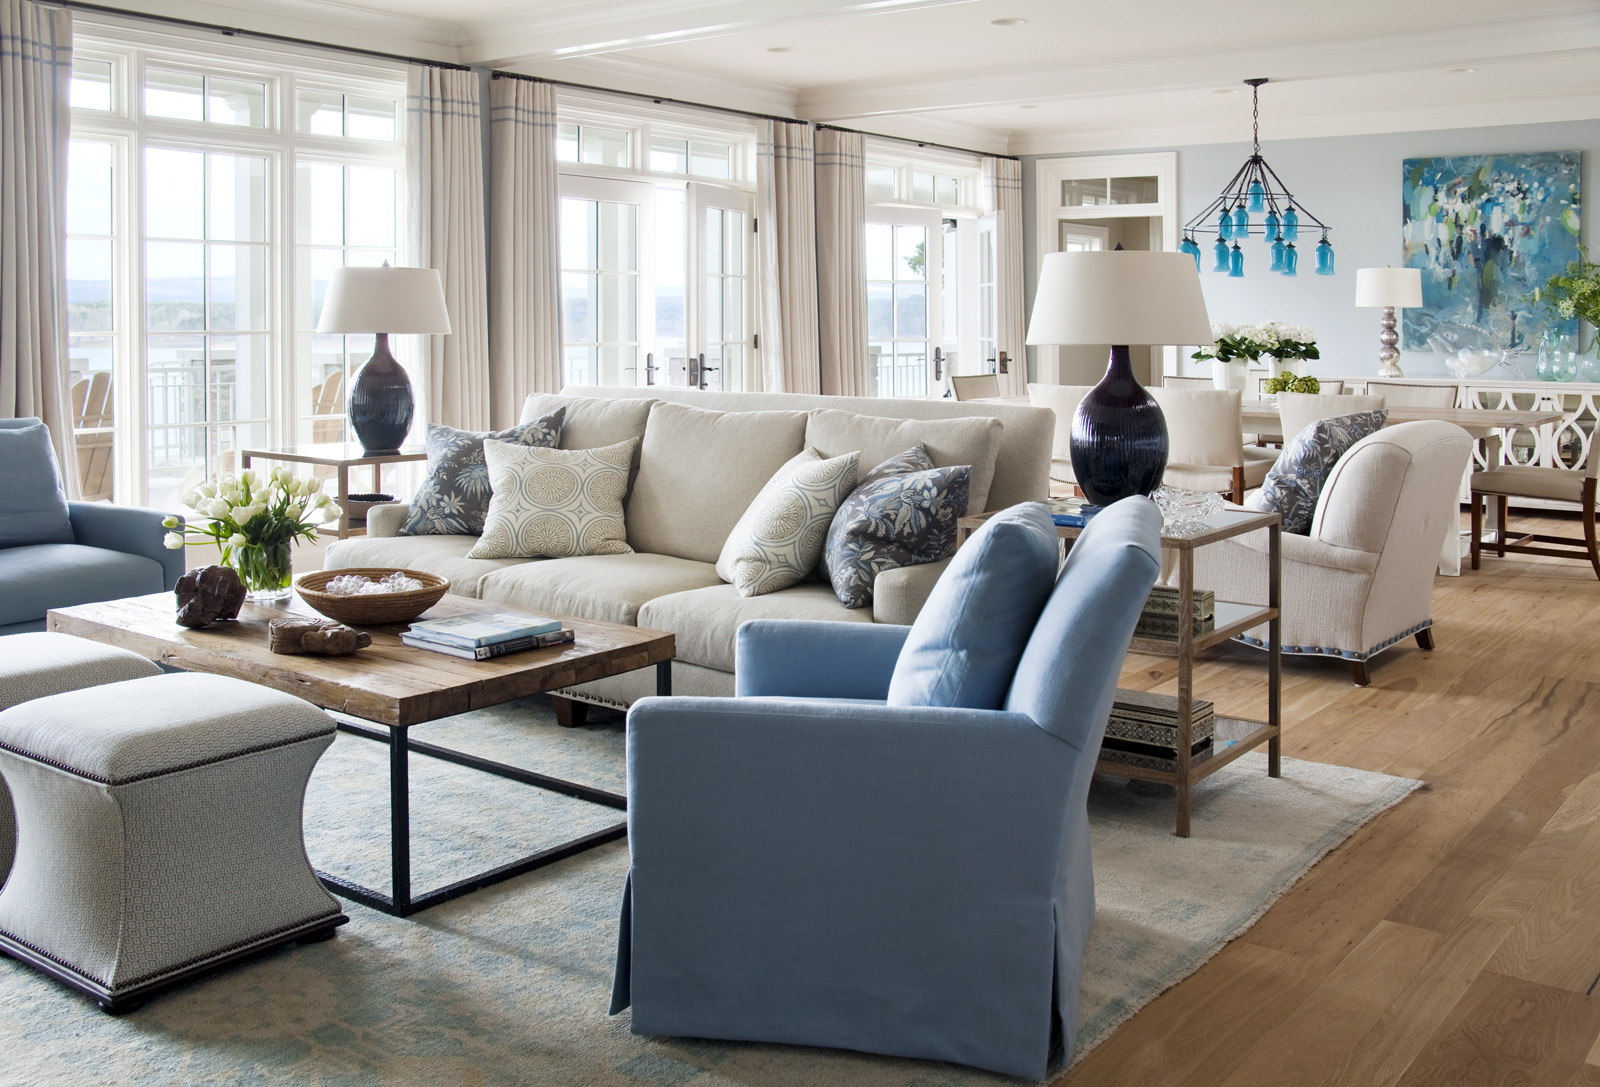 Love this beach style... Interior Heaven